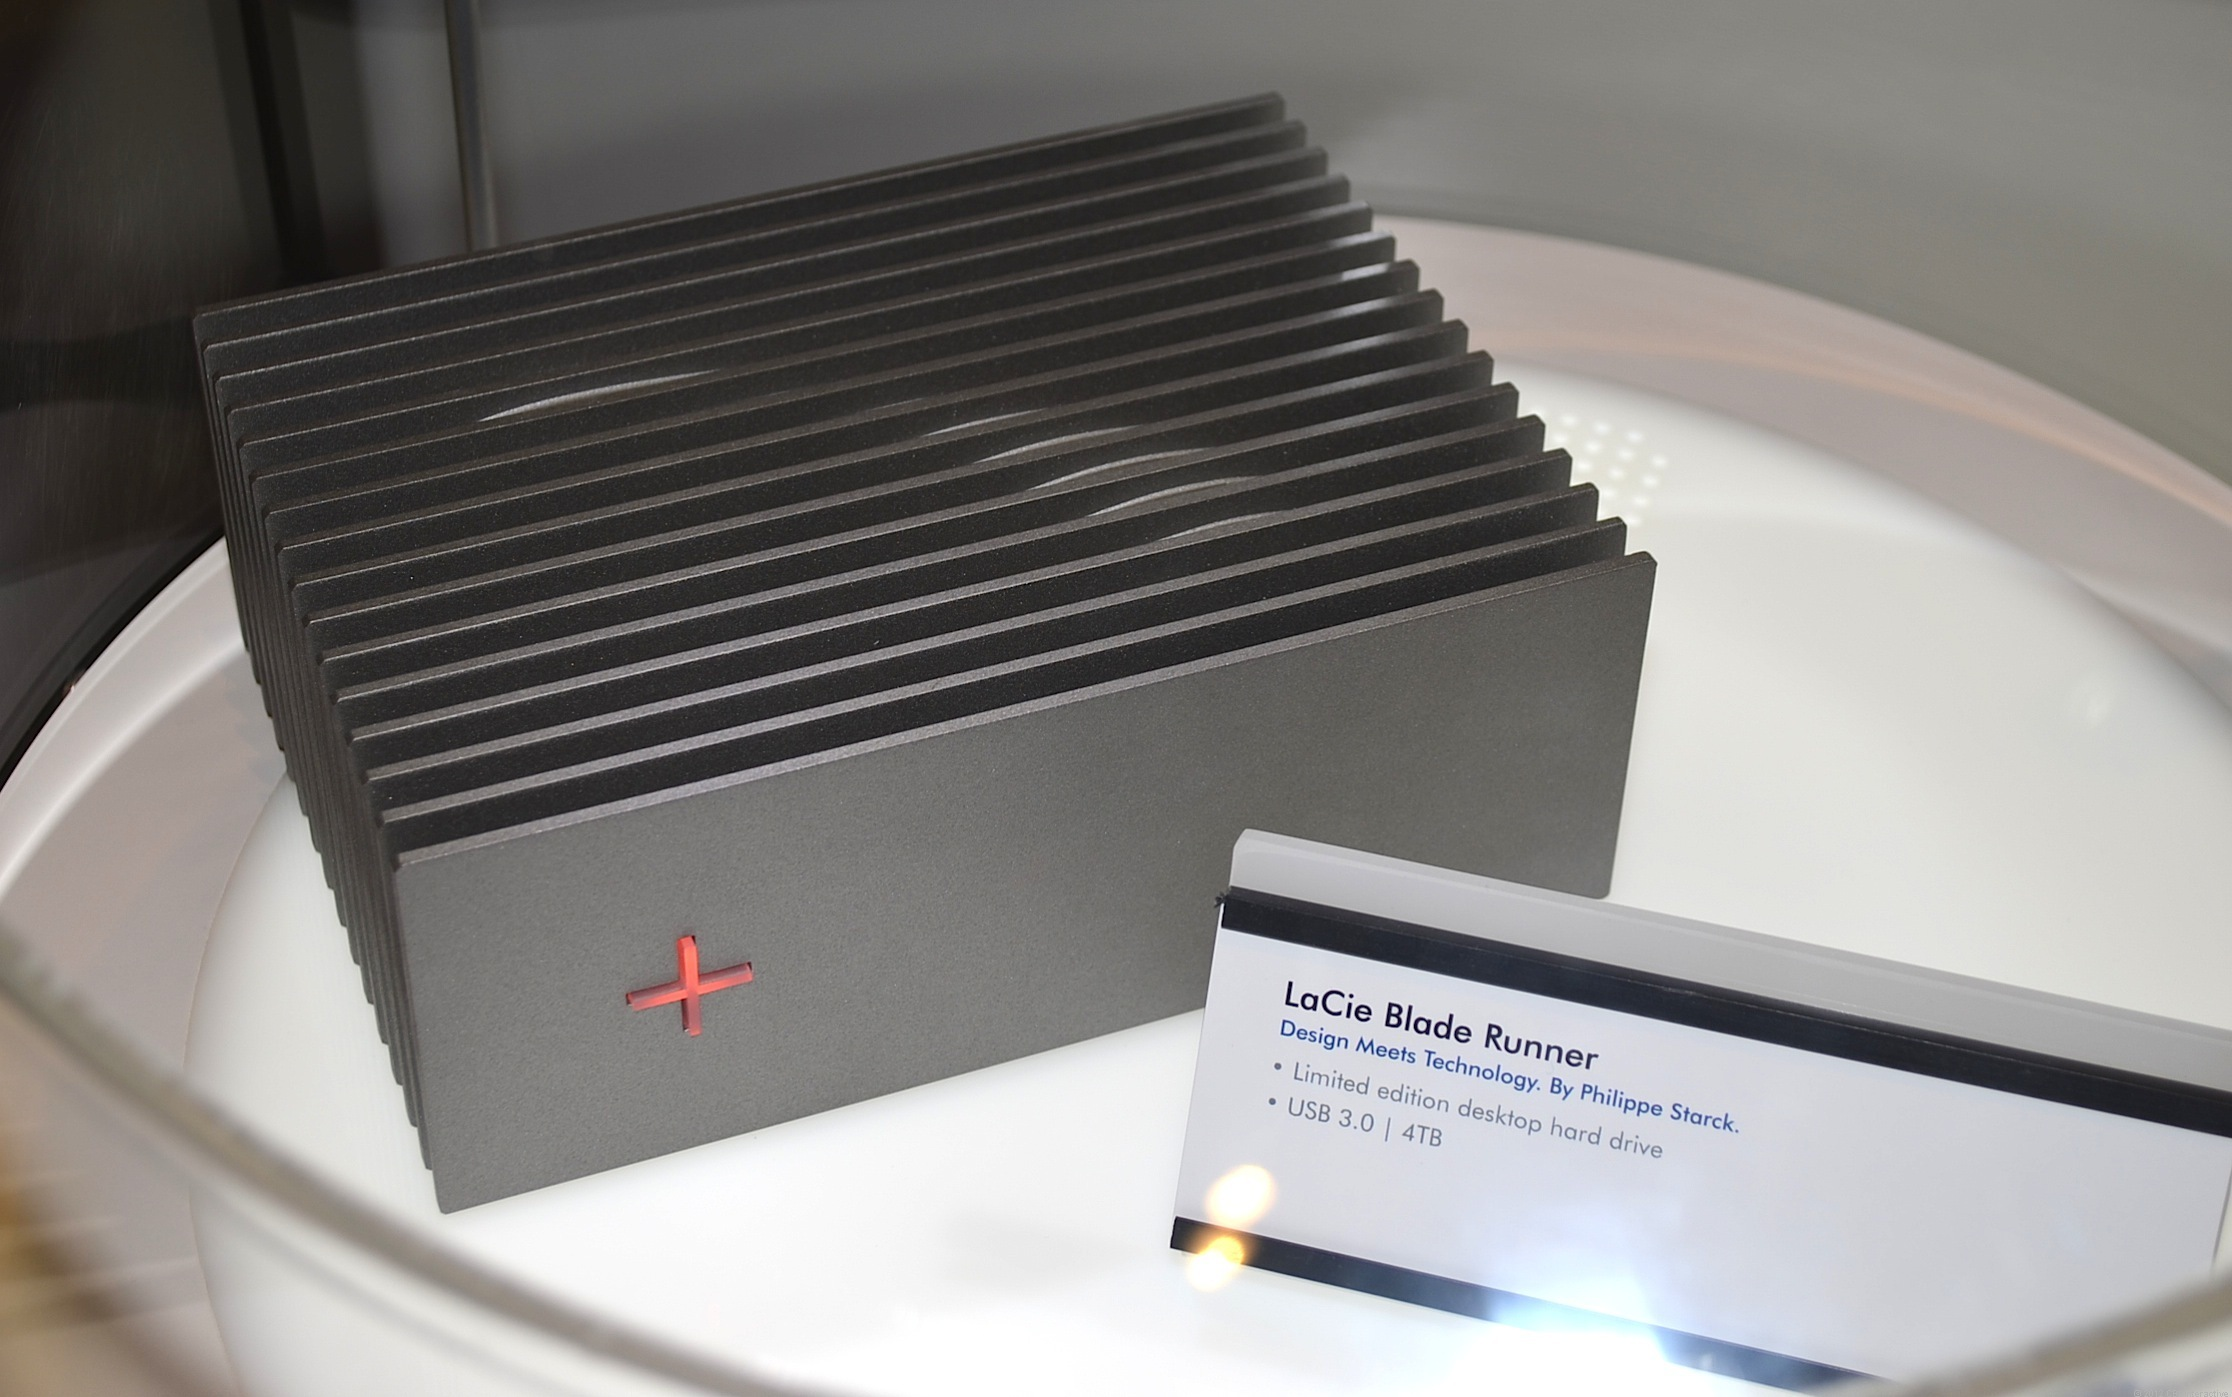 The LaCie Blade Runner external hard drive being shown at CES 2013.